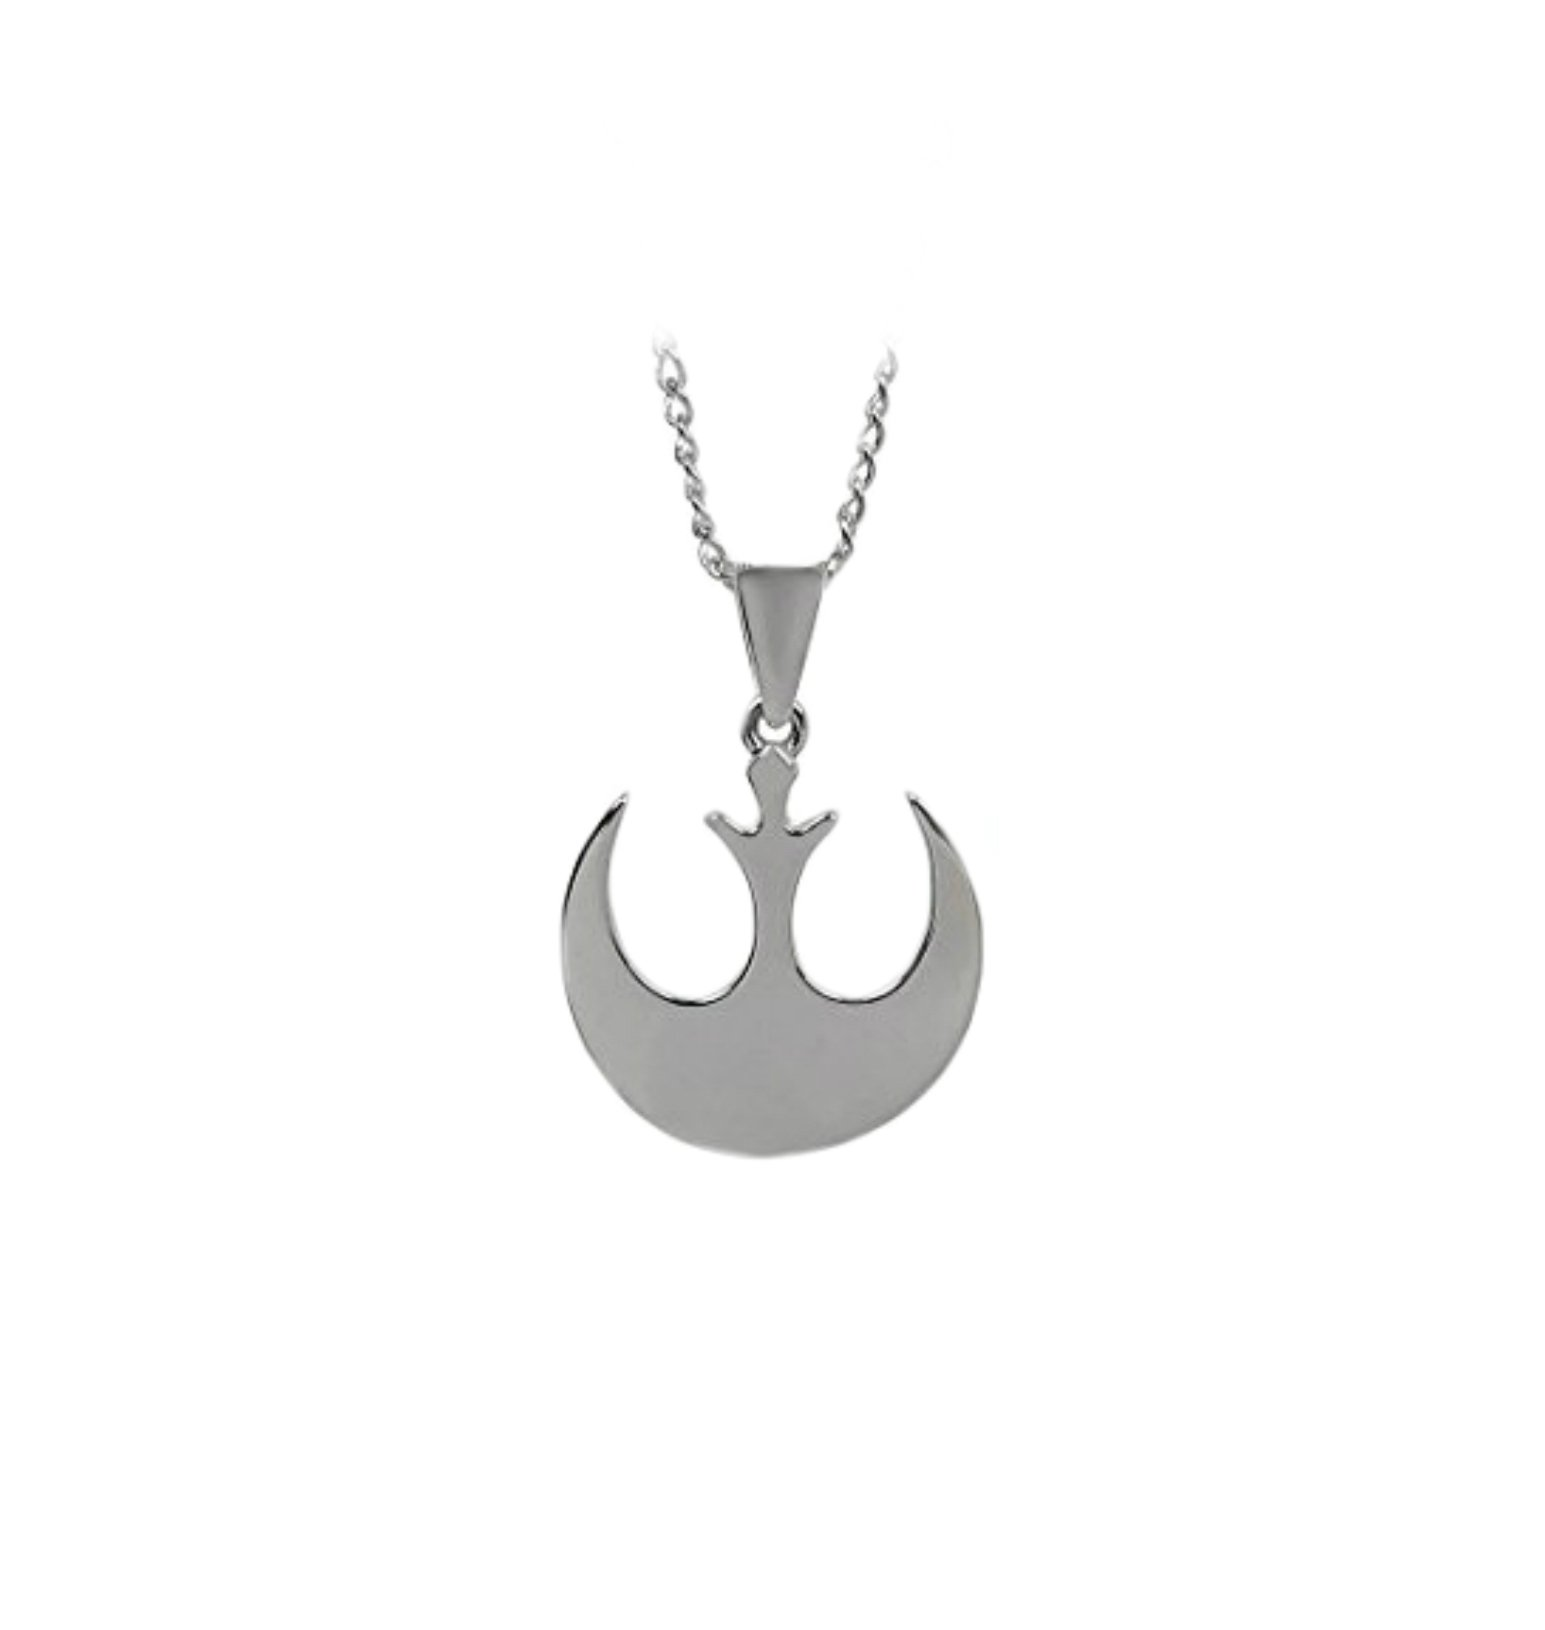 Starwars Necklace Pendant - Silver Rebel Logo - Movies Comics Cartoons Cosplay by Athena Brand